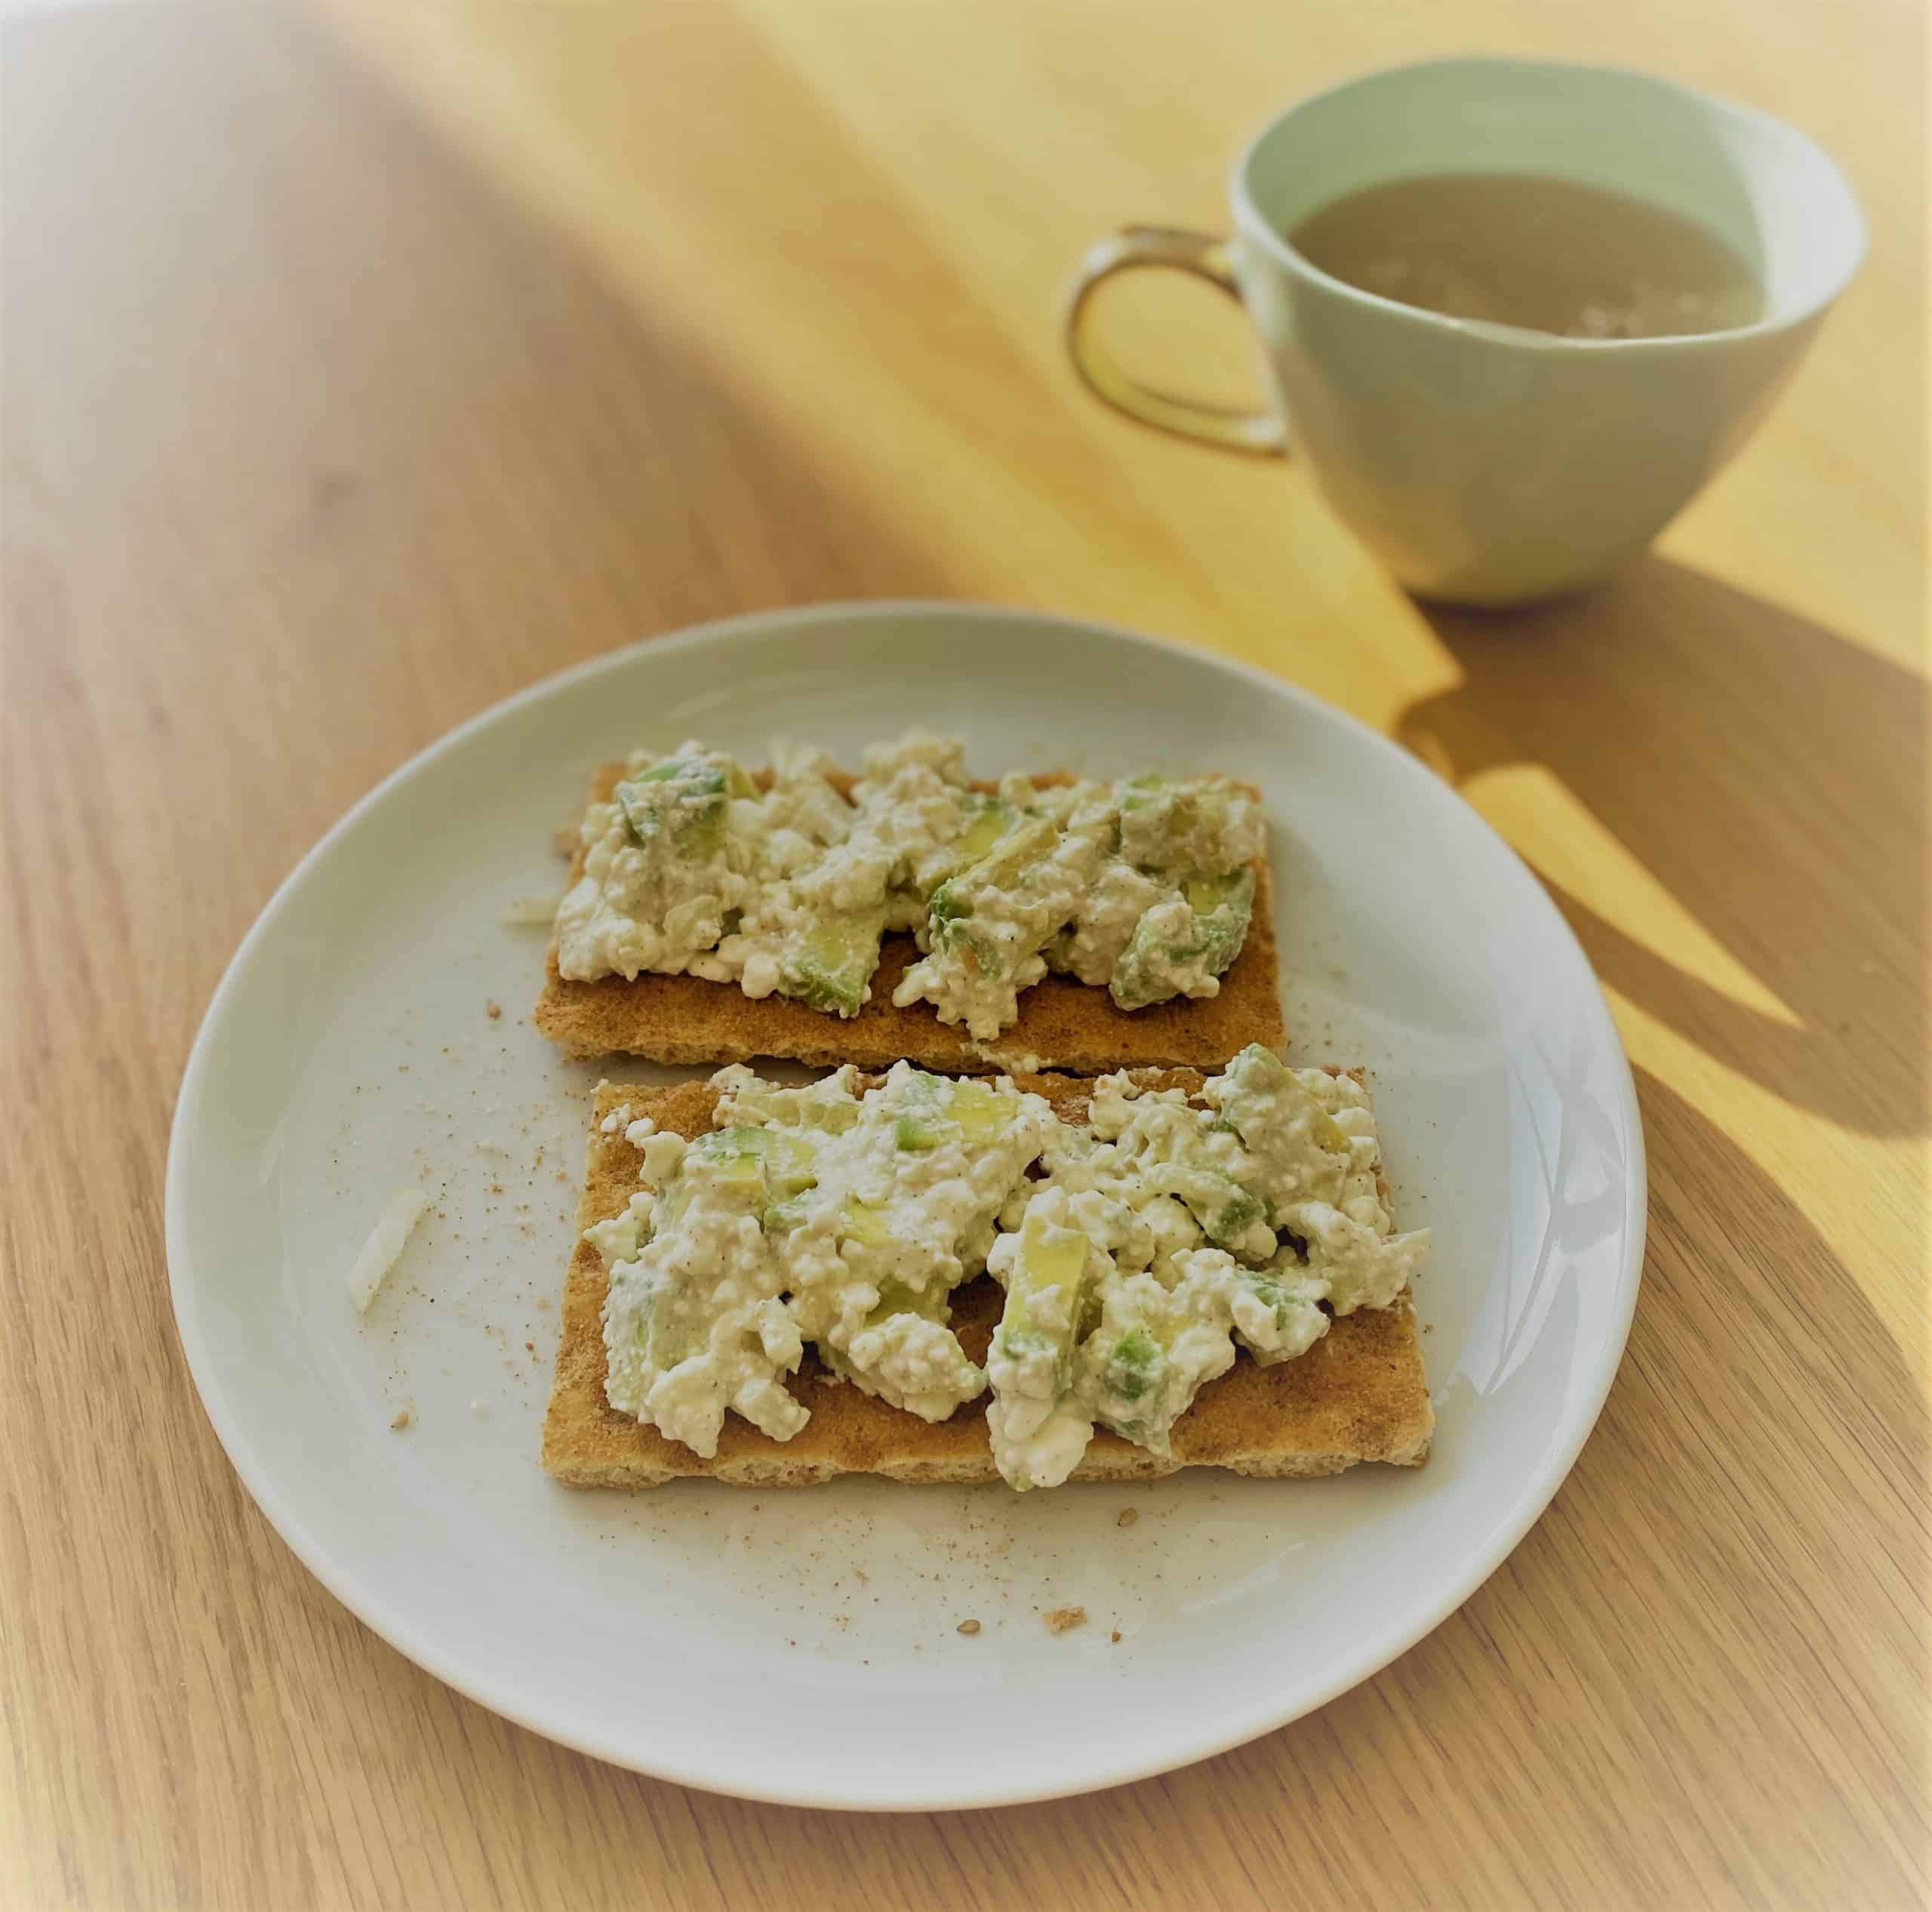 Avocado Huttenkase op cracker